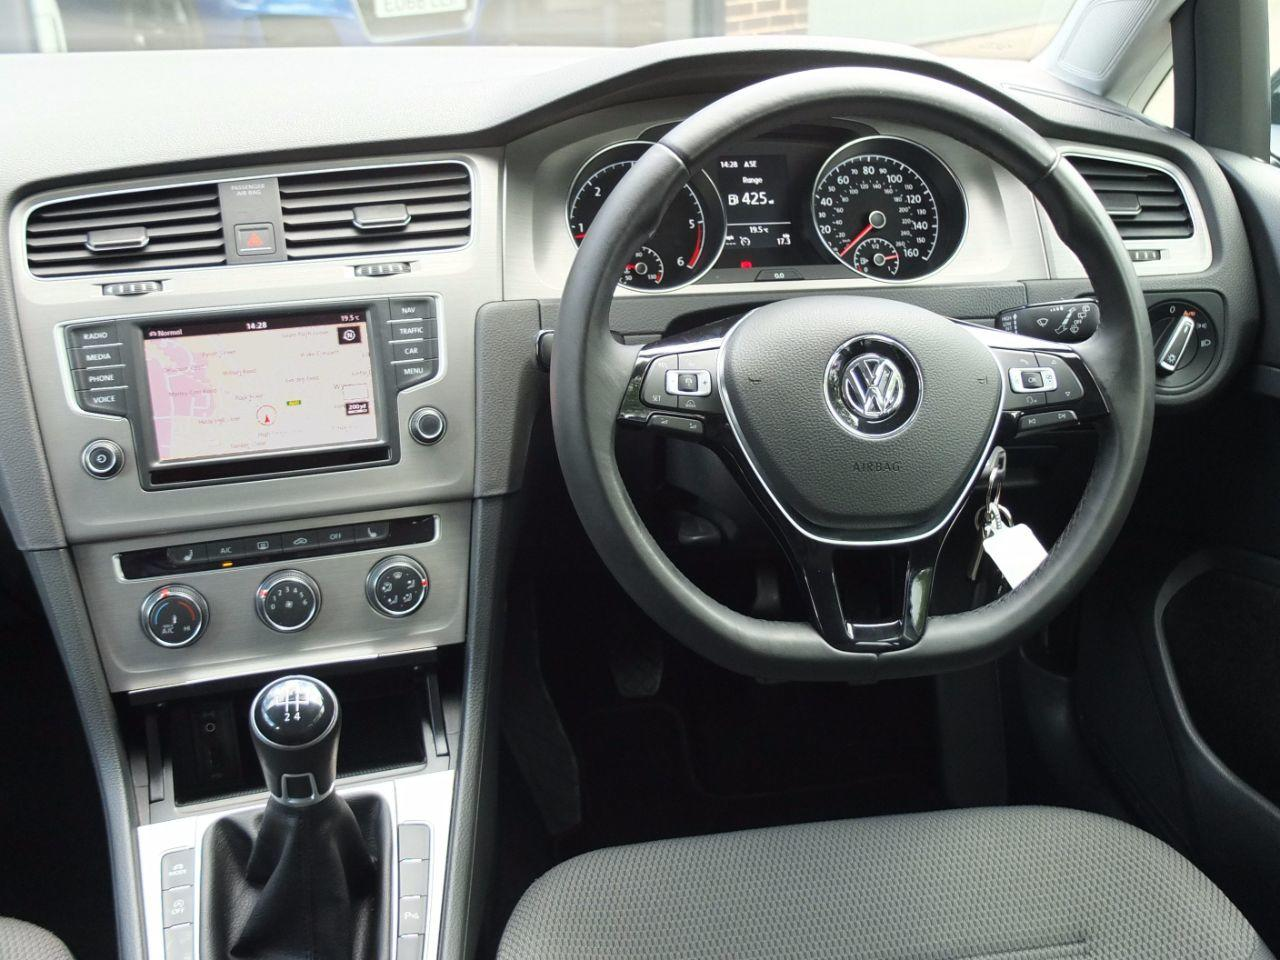 Volkswagen Golf 1.6 TDI 110ps Match Edition 5 door Hatchback Diesel Urano Grey